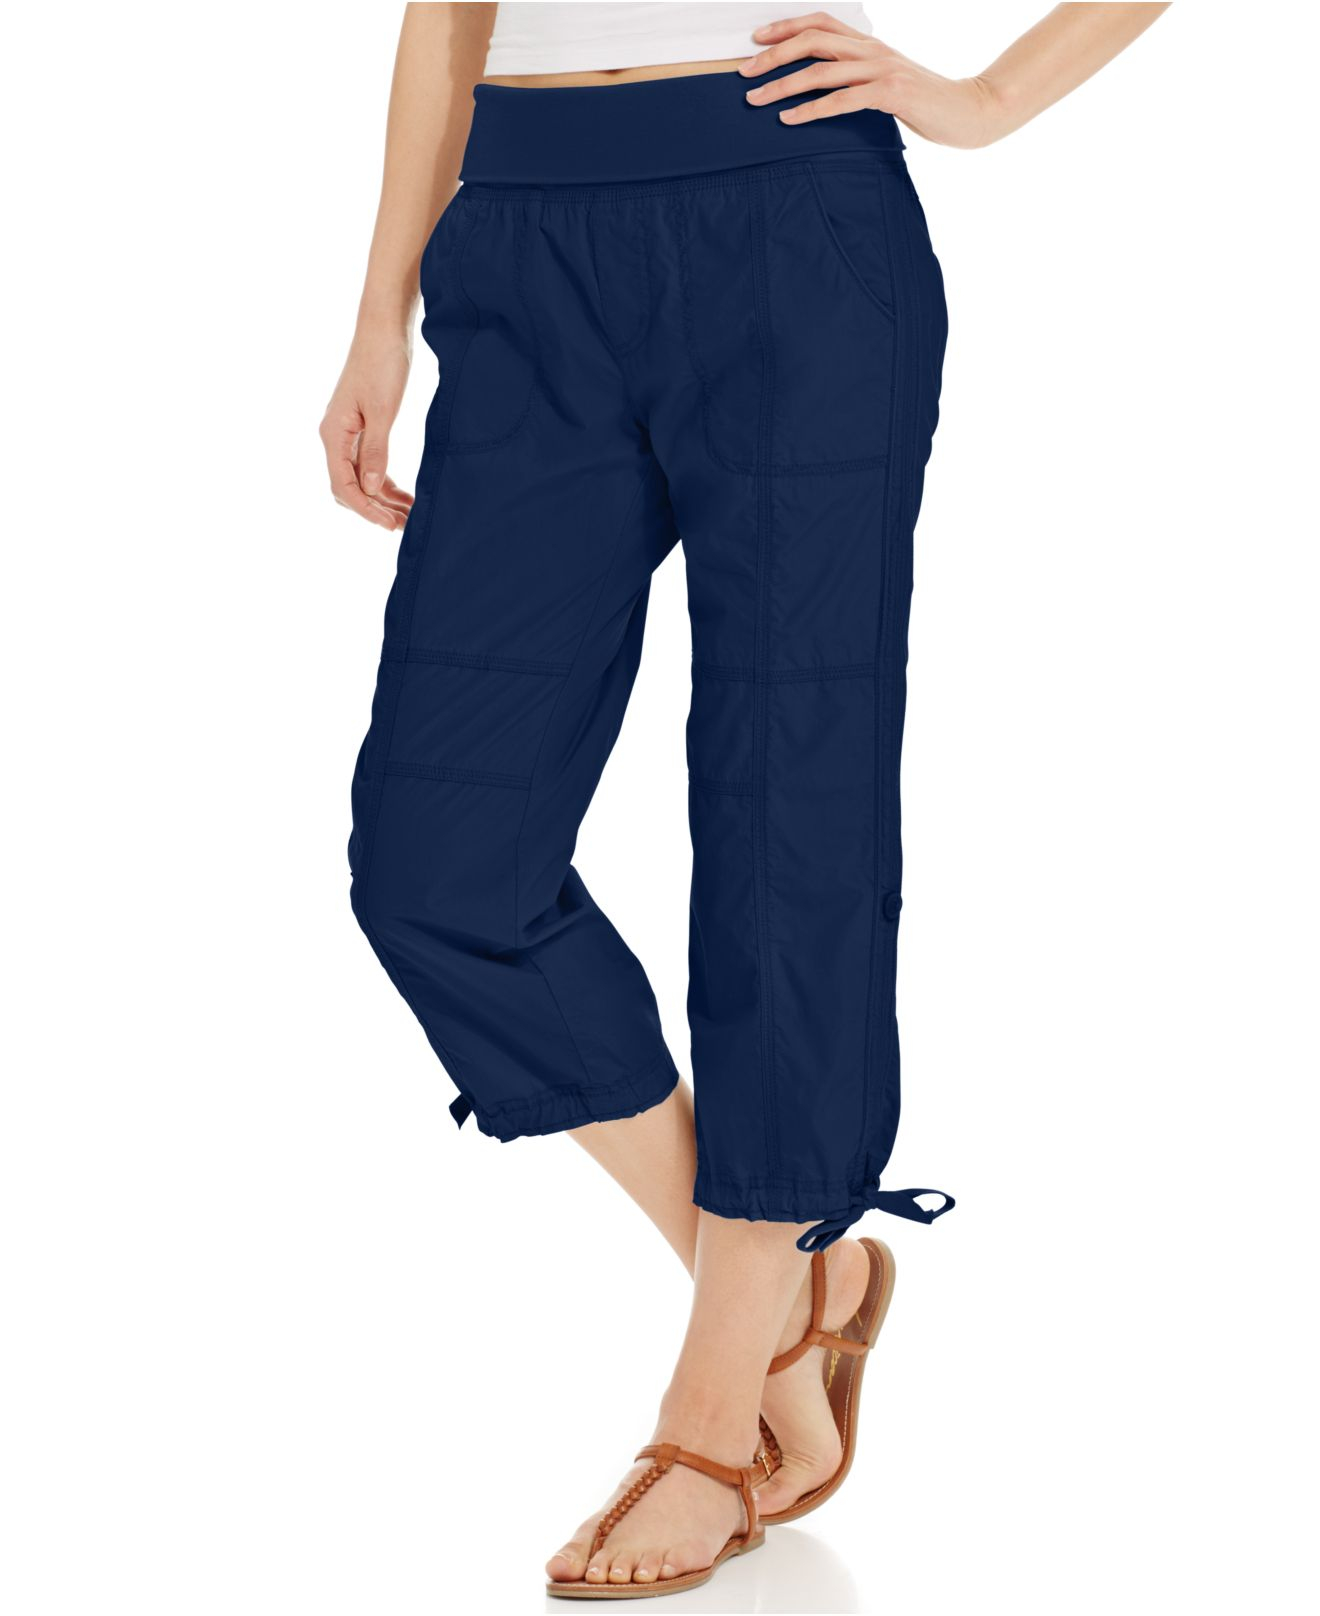 Calvin klein Cotton Capri Pants in Blue | Lyst